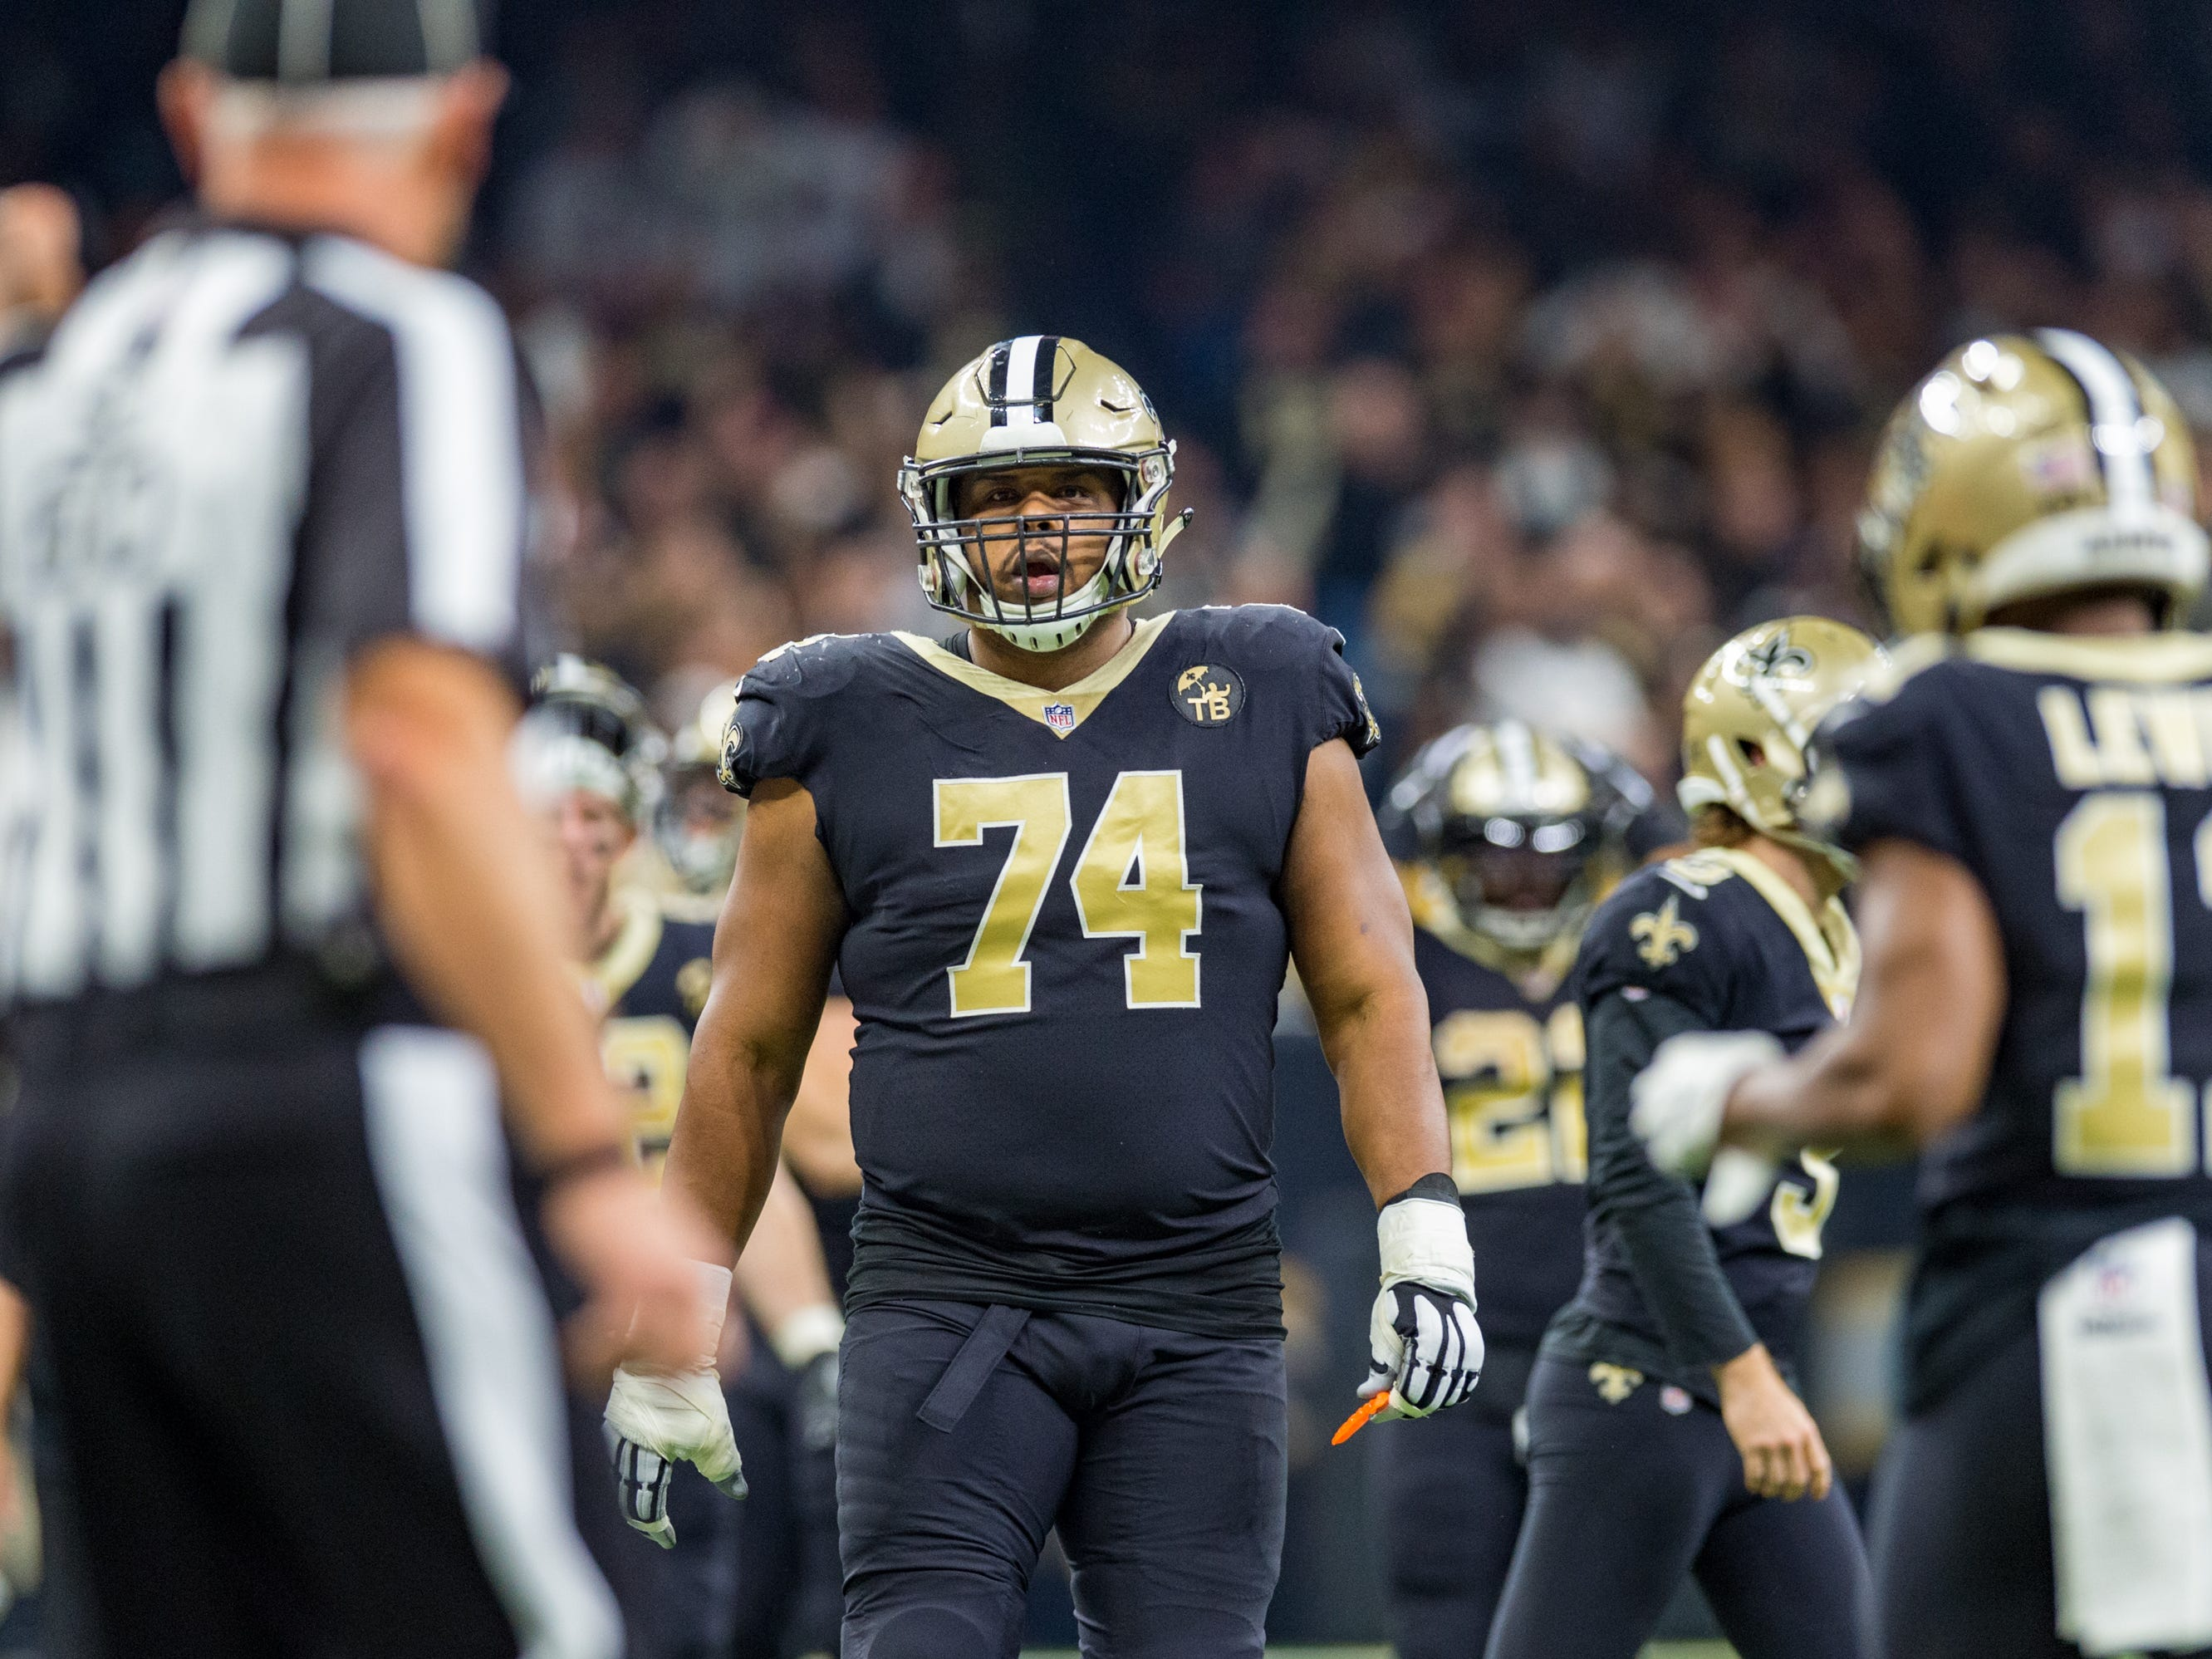 Saints tackle Jermain Bushrod reacts after the no call pass interference  during the NFC Championship playoff football game between the New Orleans Saints and the Los Angeles Rams at the Mercedes-Benz Superdome in New Orleans. Sunday, Jan. 20, 2019.